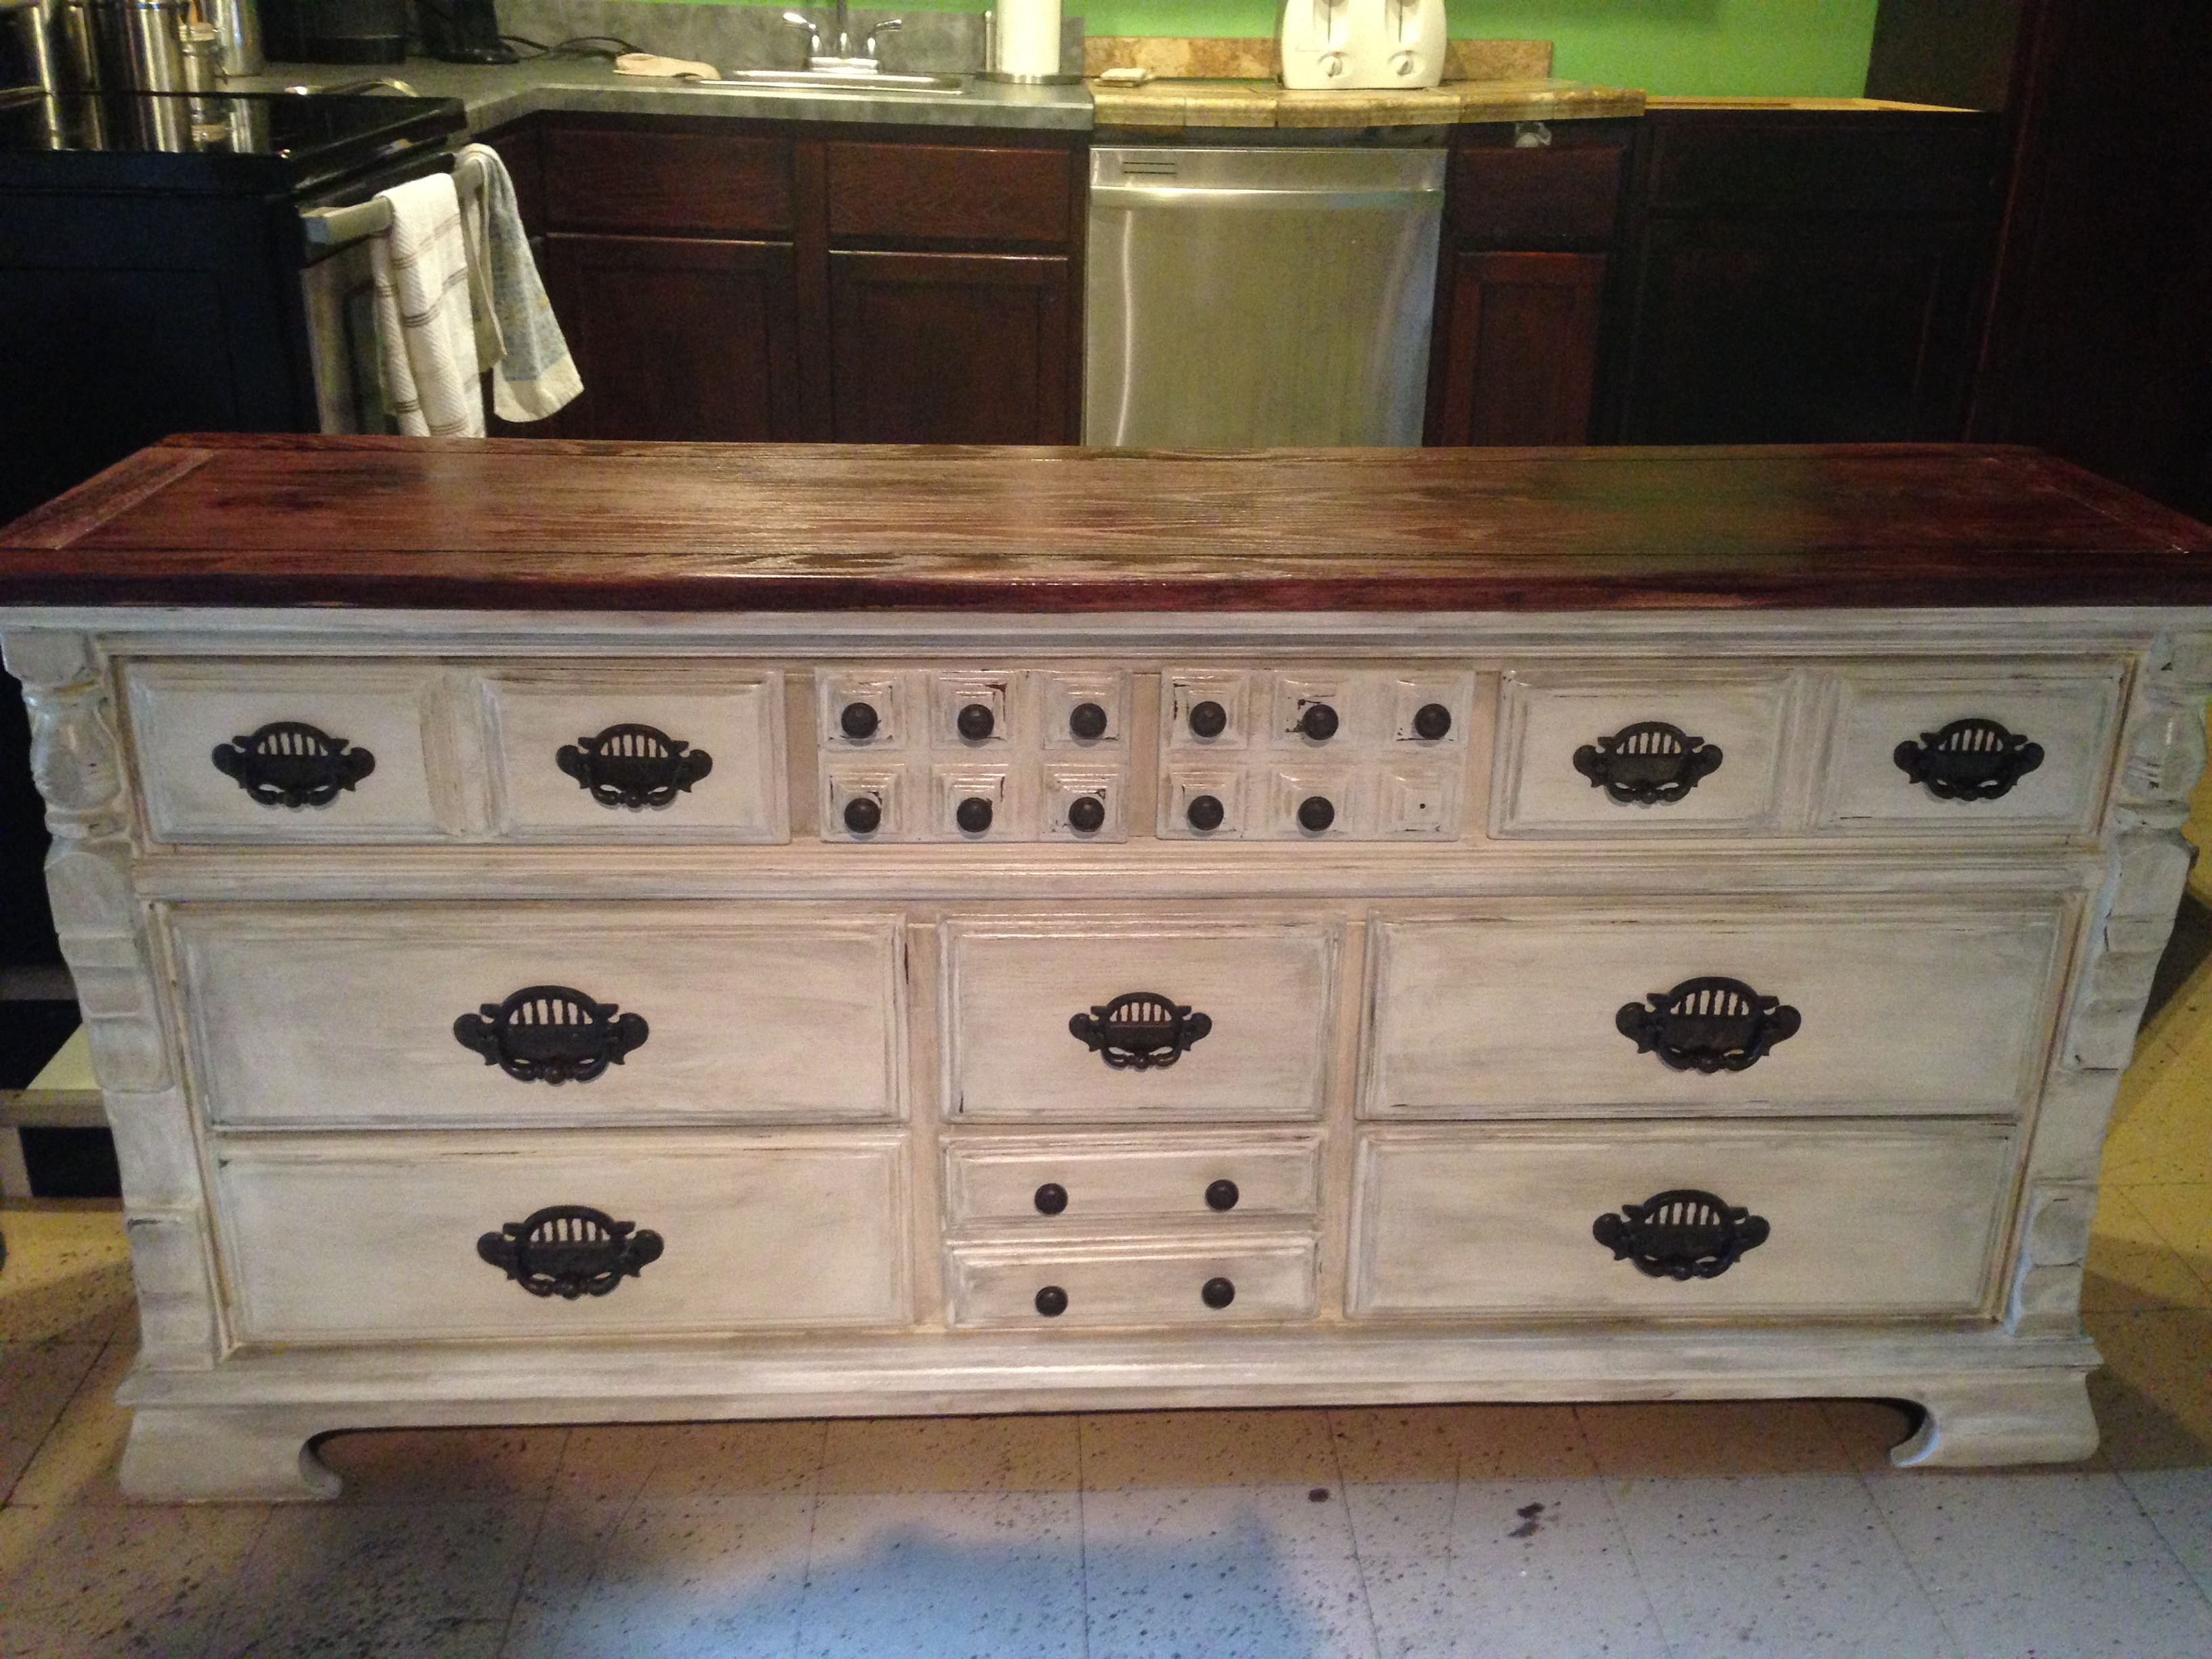 Old dresser repurposed into kitchen island. I painted and antiqued ...